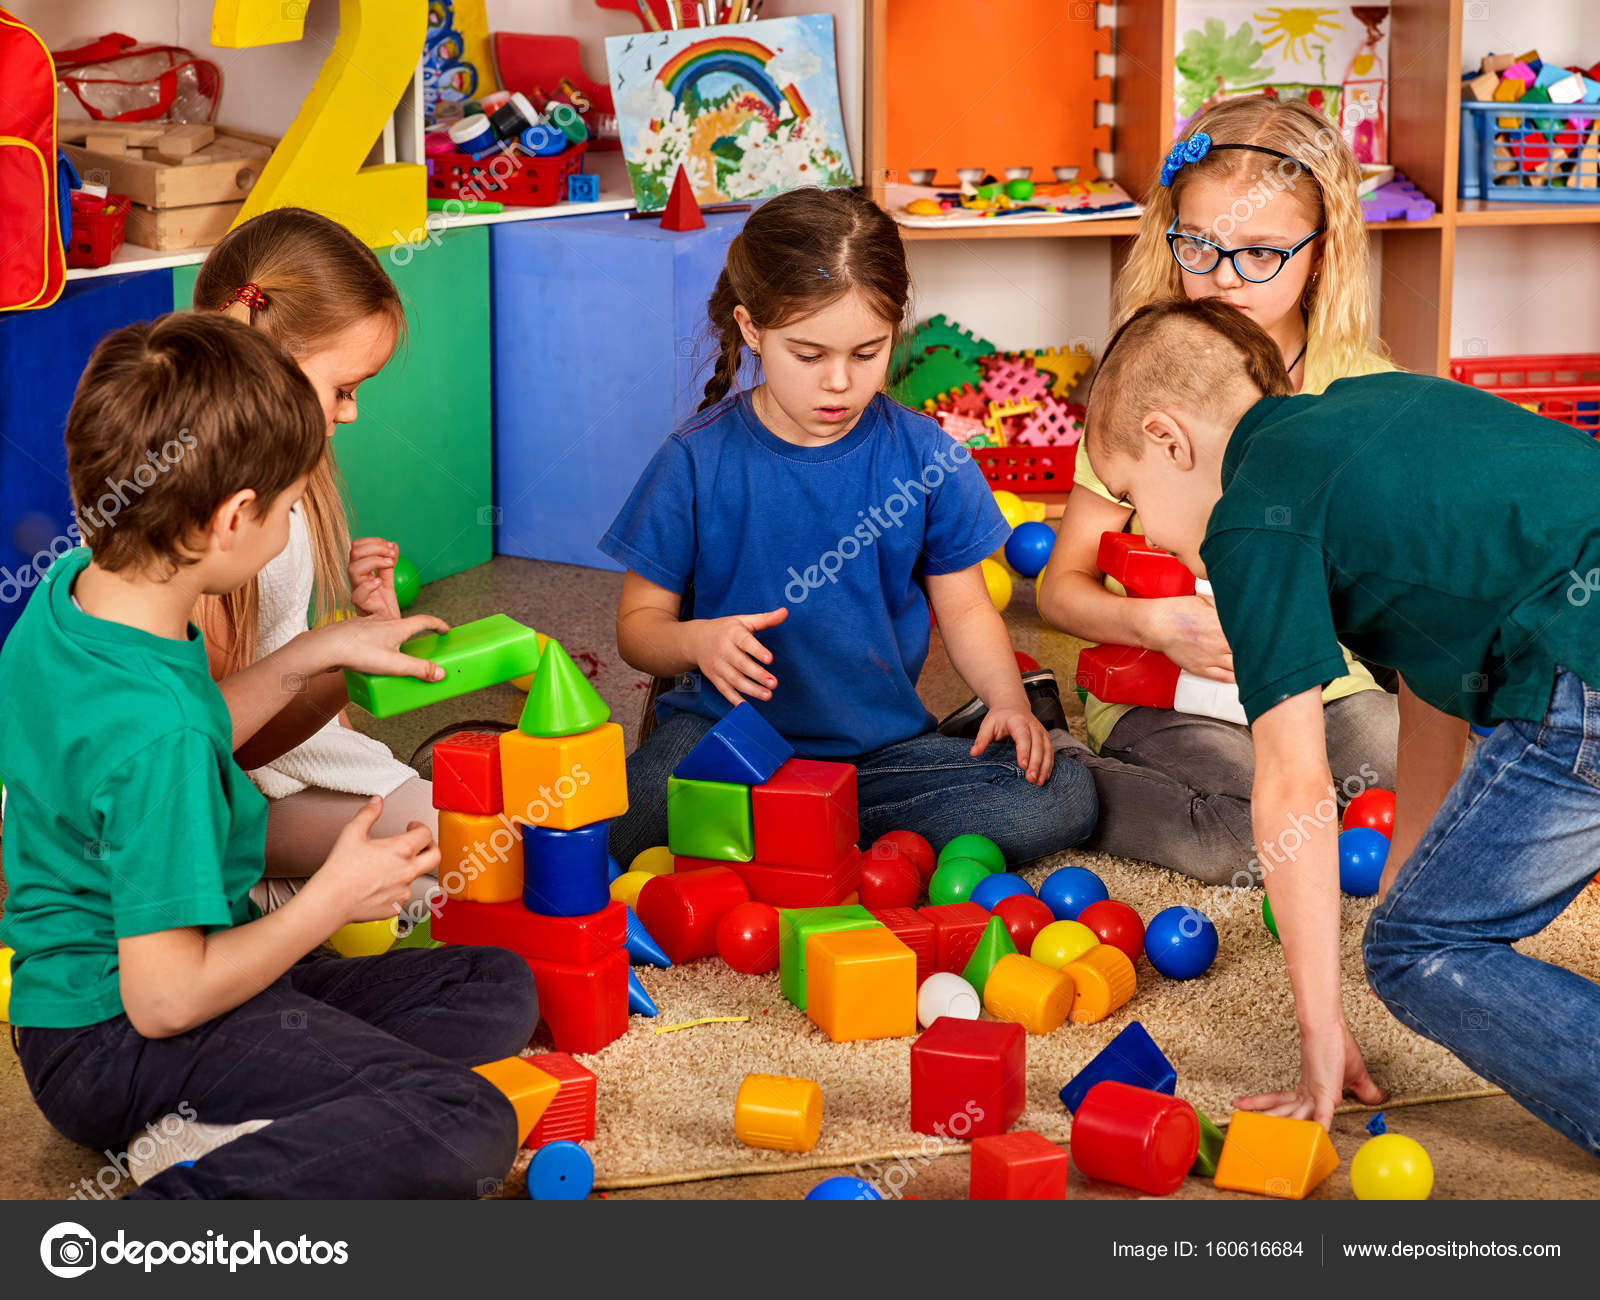 Children building blocks in kindergarten Group kids playing toy